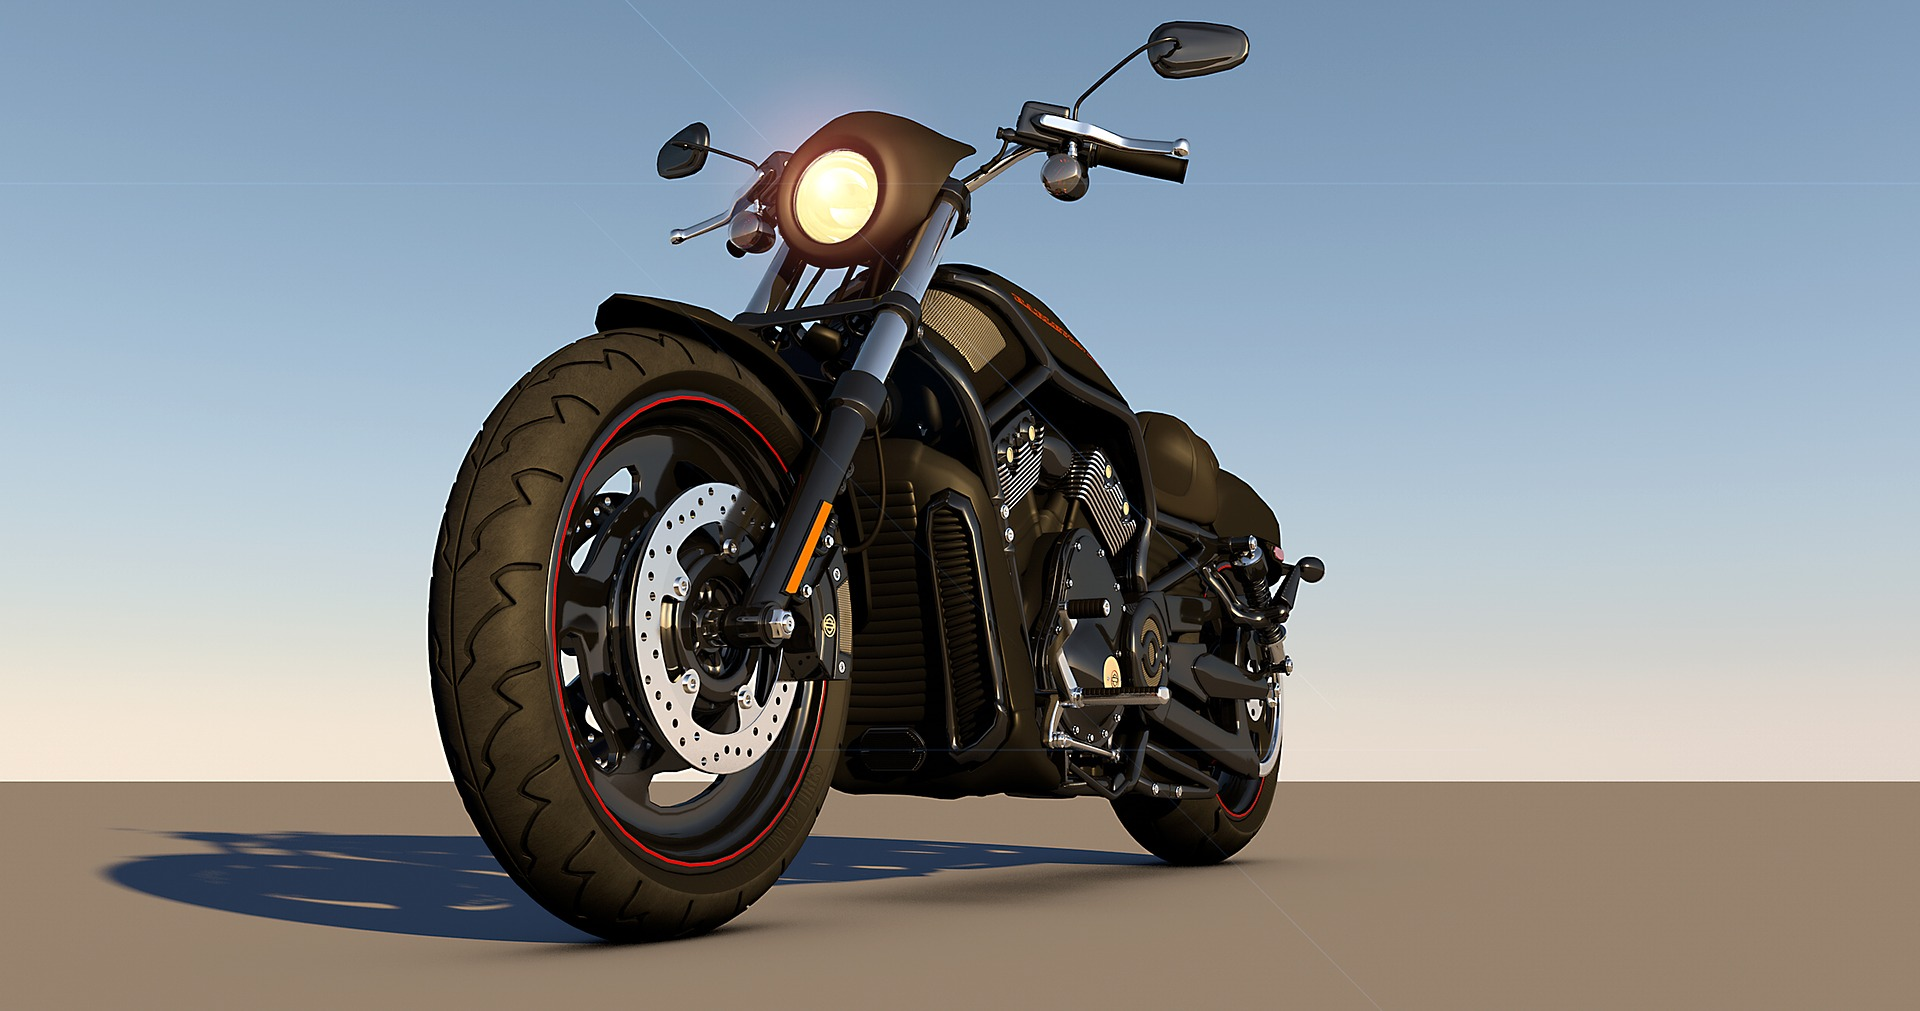 Affordable Motorcycle insurance plans